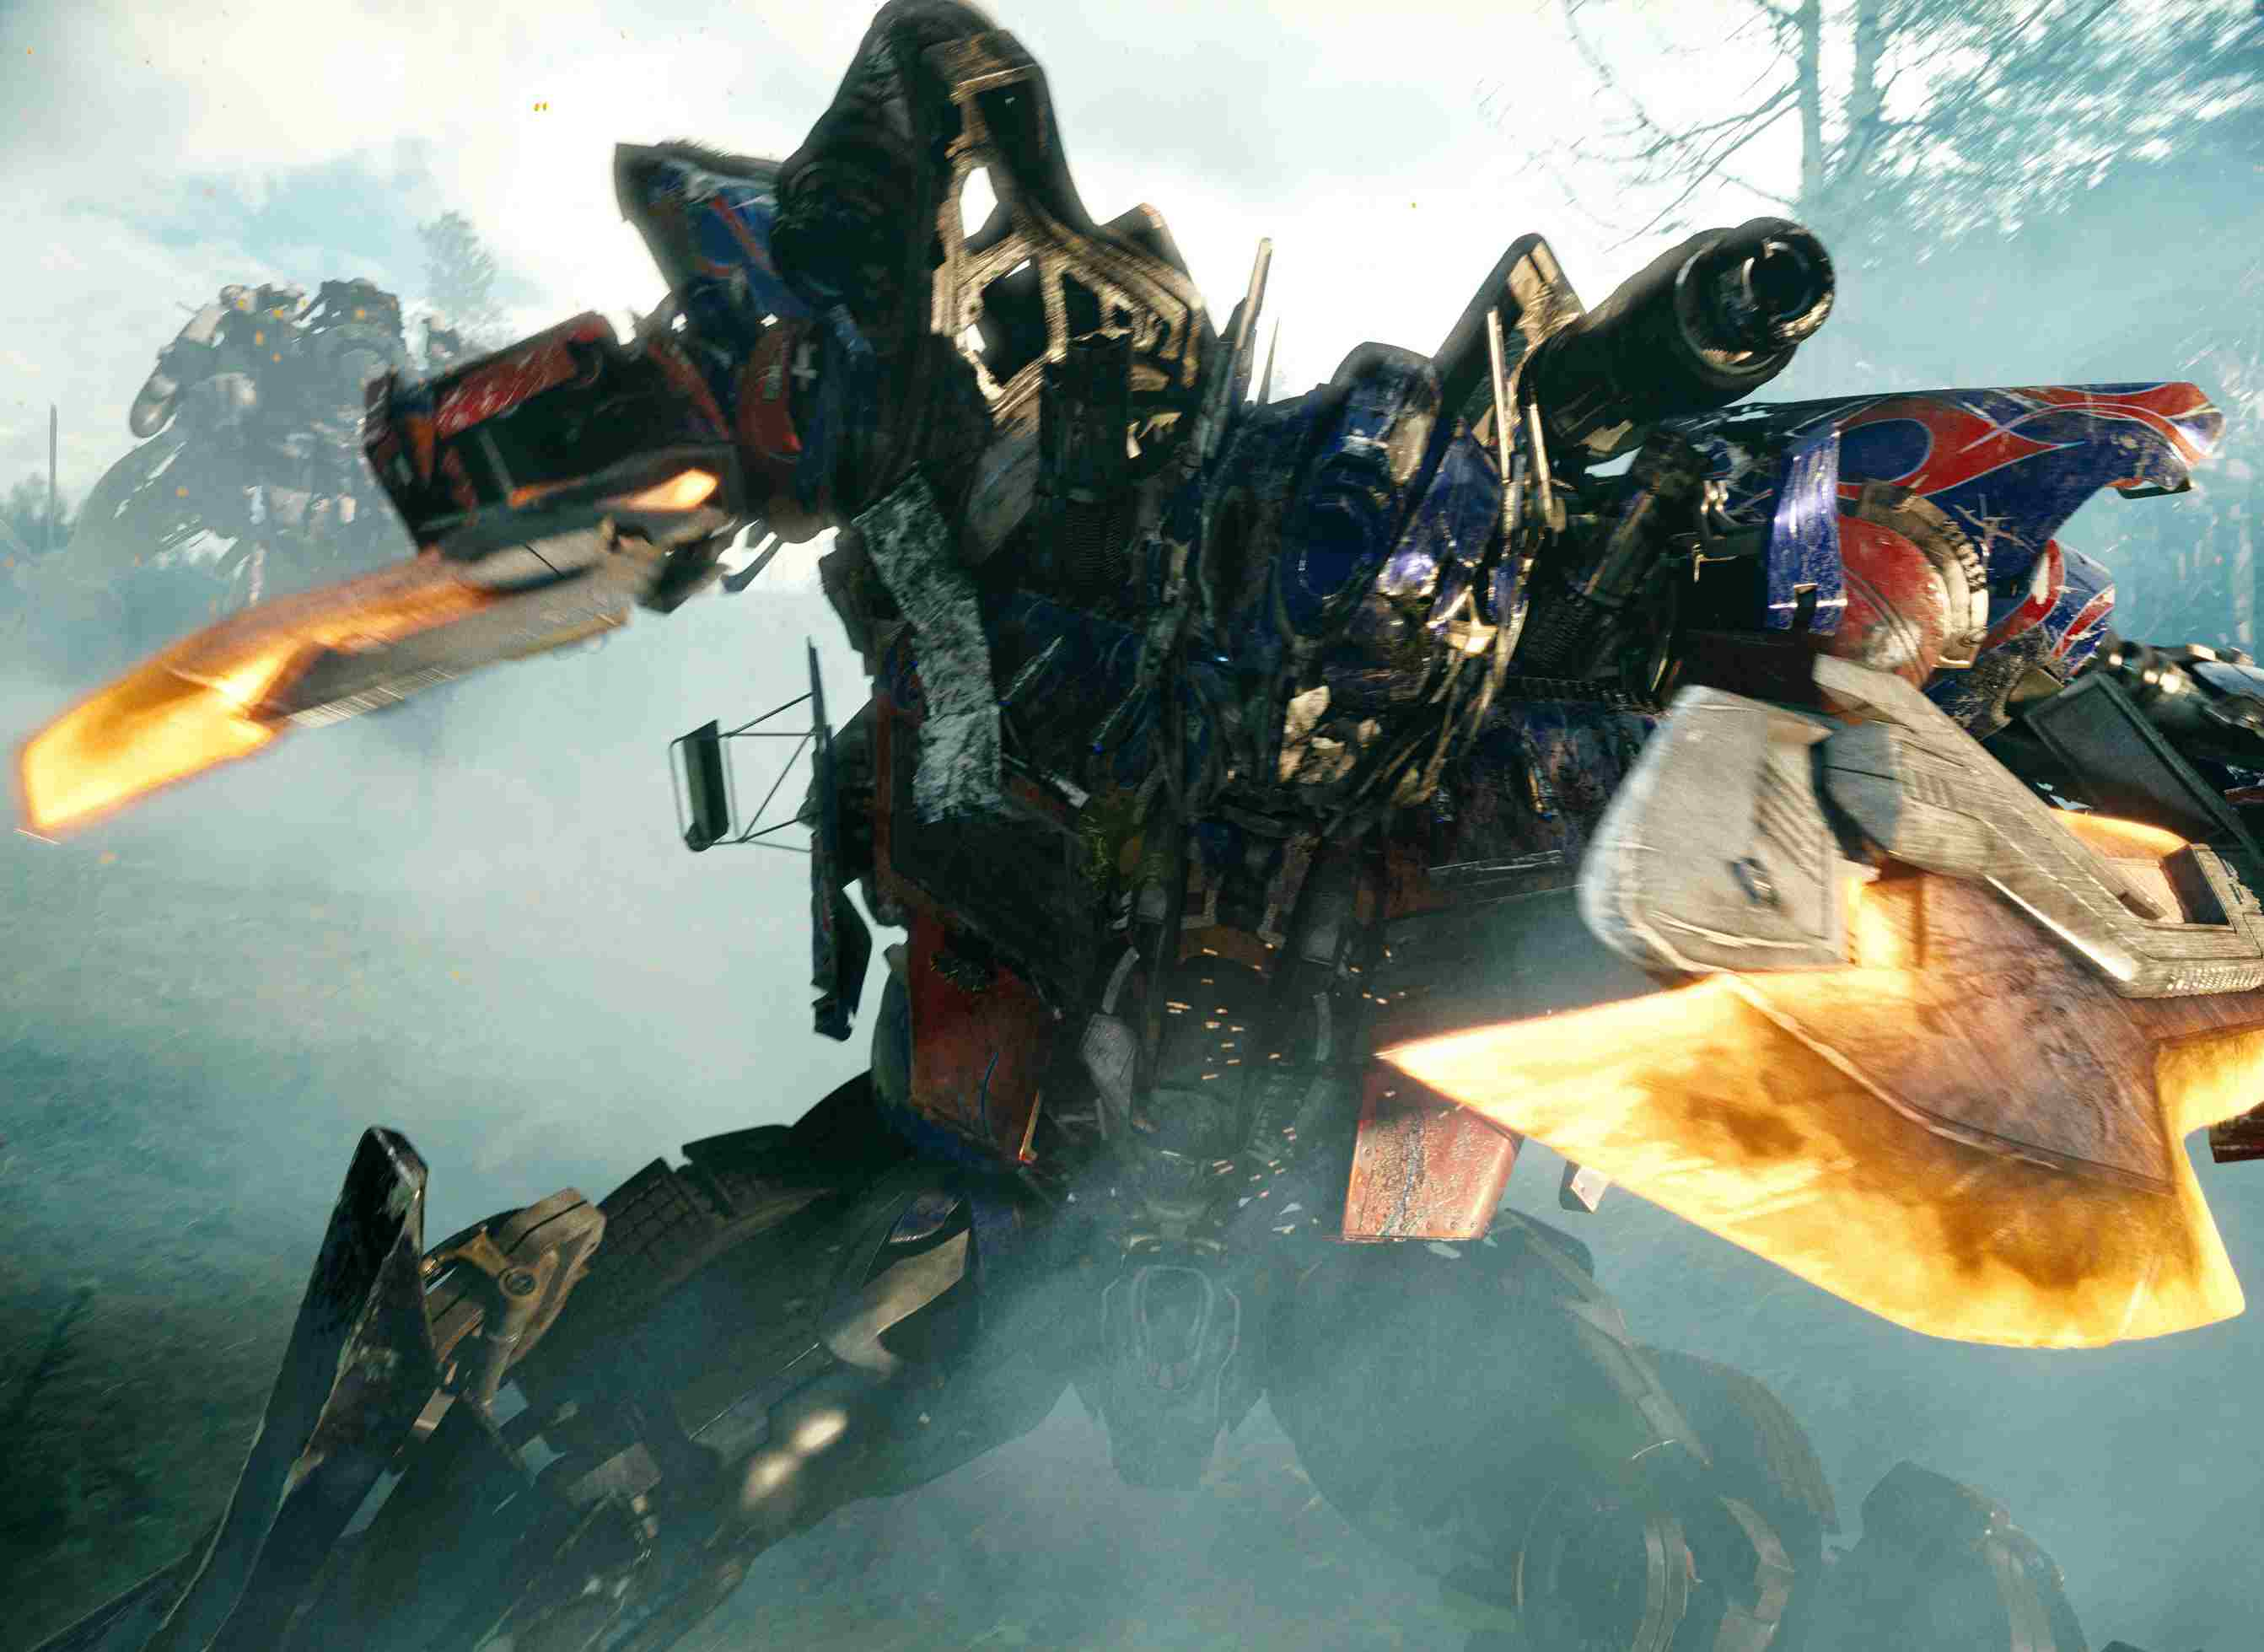 Rotf-optimusprime-film-forest2.jpg